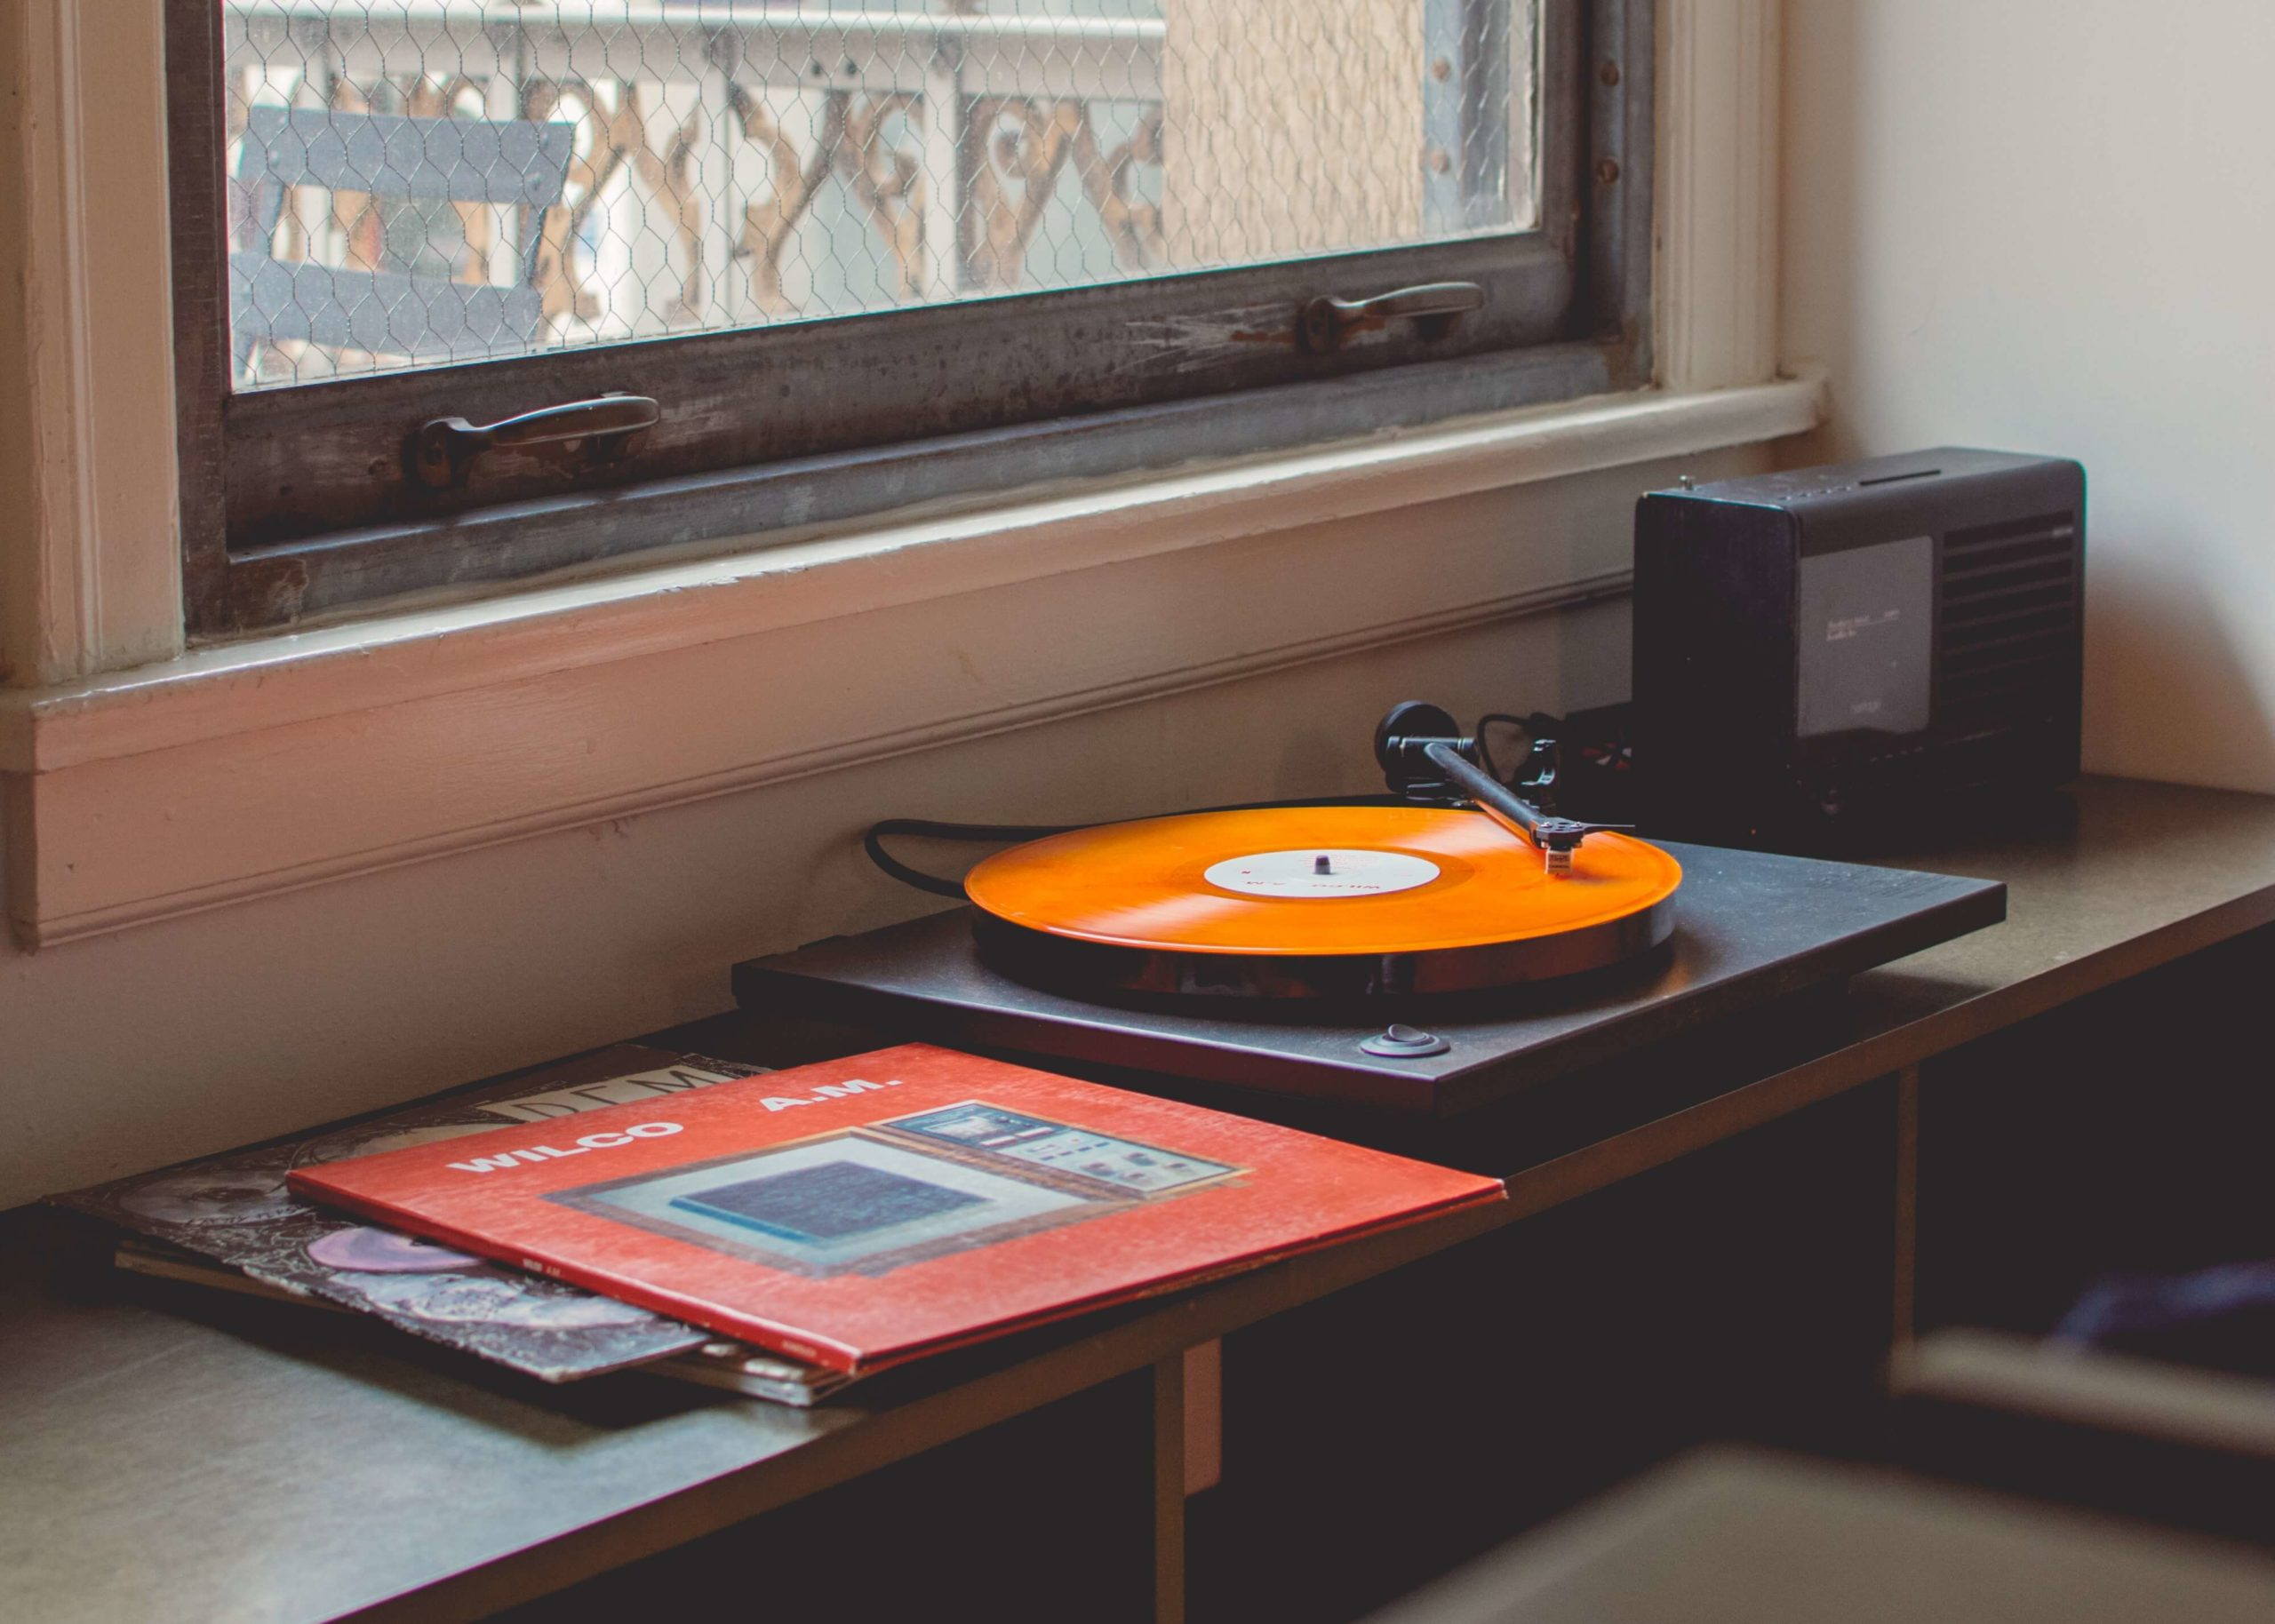 An orange record sleeve lays on a shelf next to a record player, where an orange record is playing music. The  record player sits in the corner of the room in front of a window.